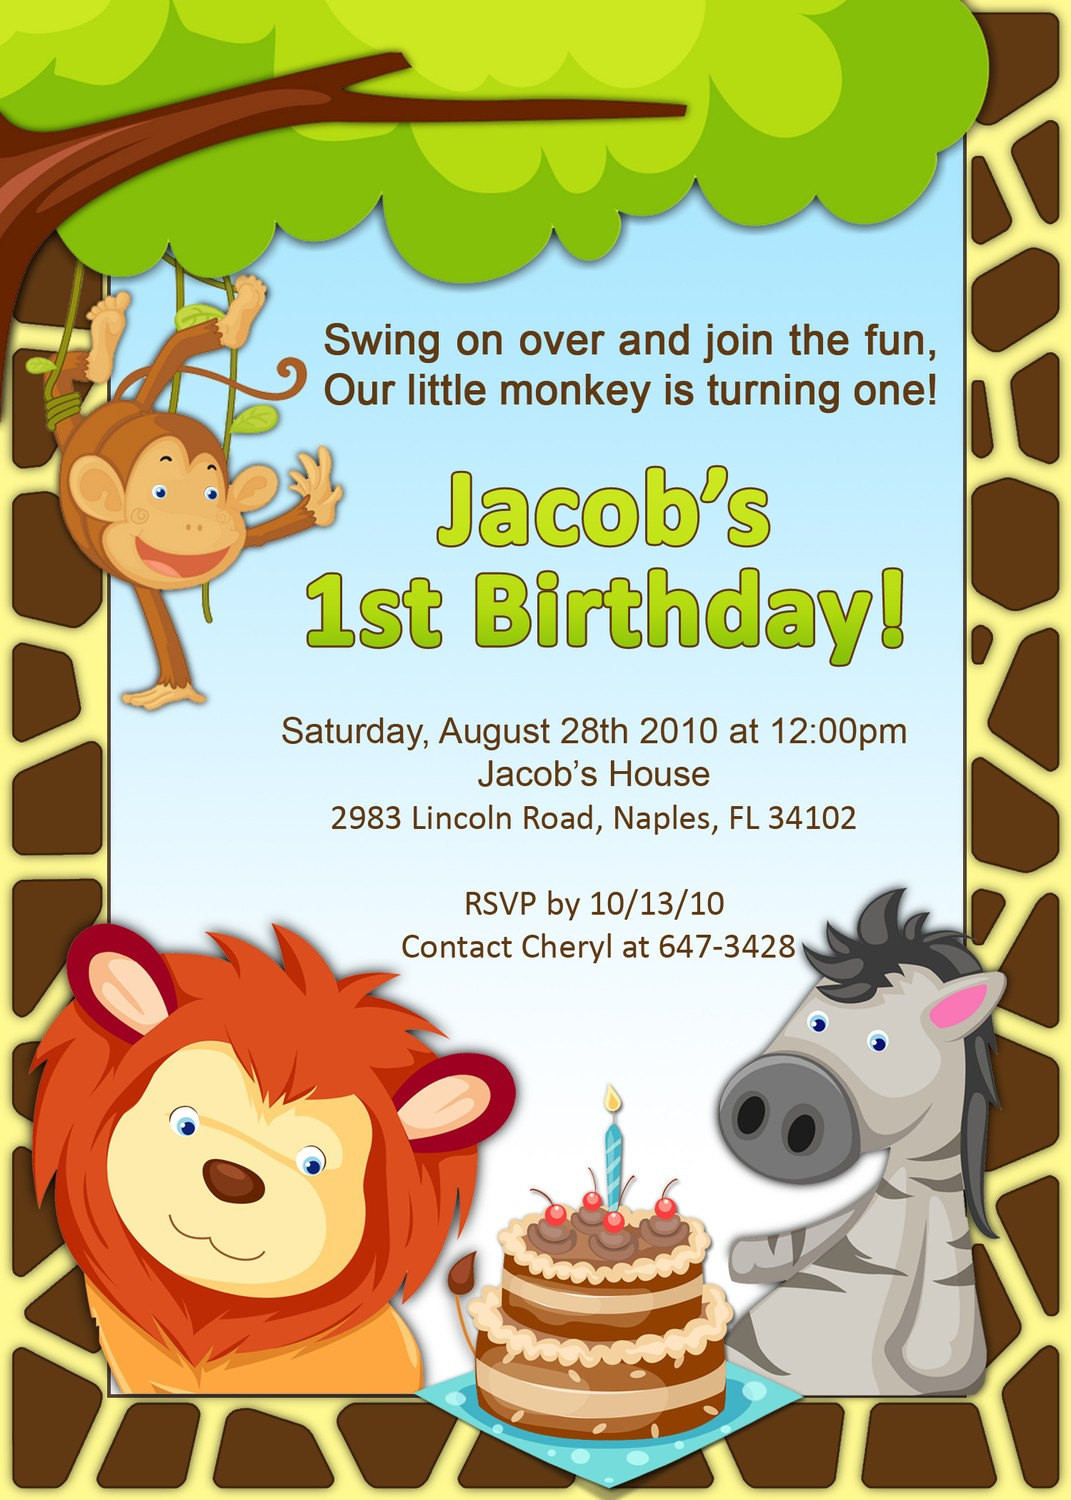 Best ideas about Jungle Theme Birthday Invitations . Save or Pin 1st Birthday Jungle Invitation Now.